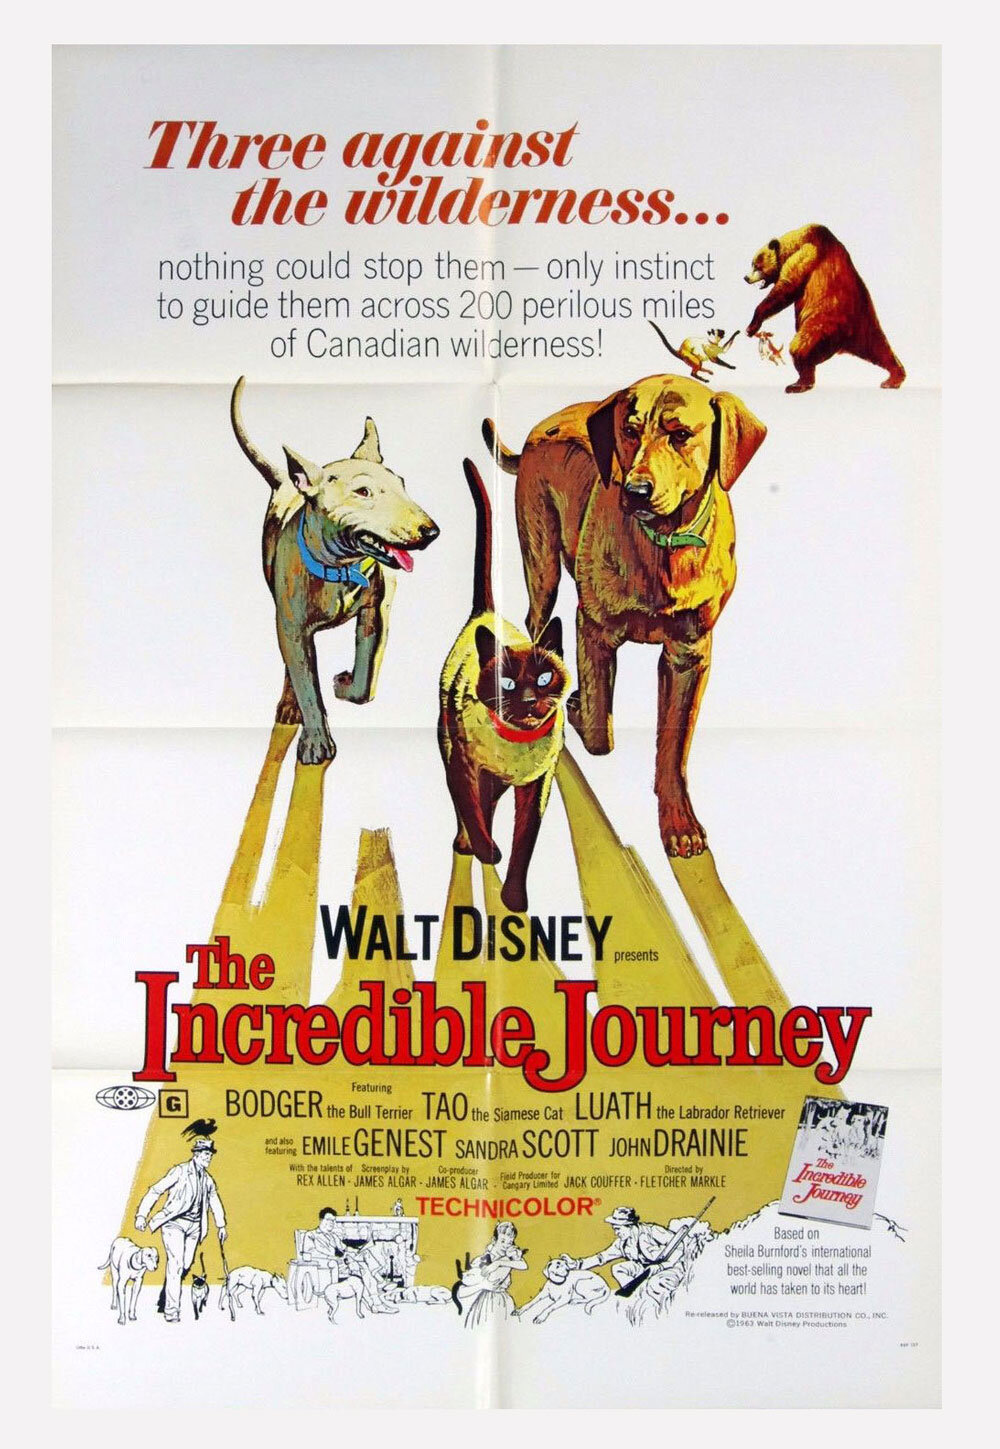 Incredible Journey 1969  Movie Poster 27 x 41 1 Sheet